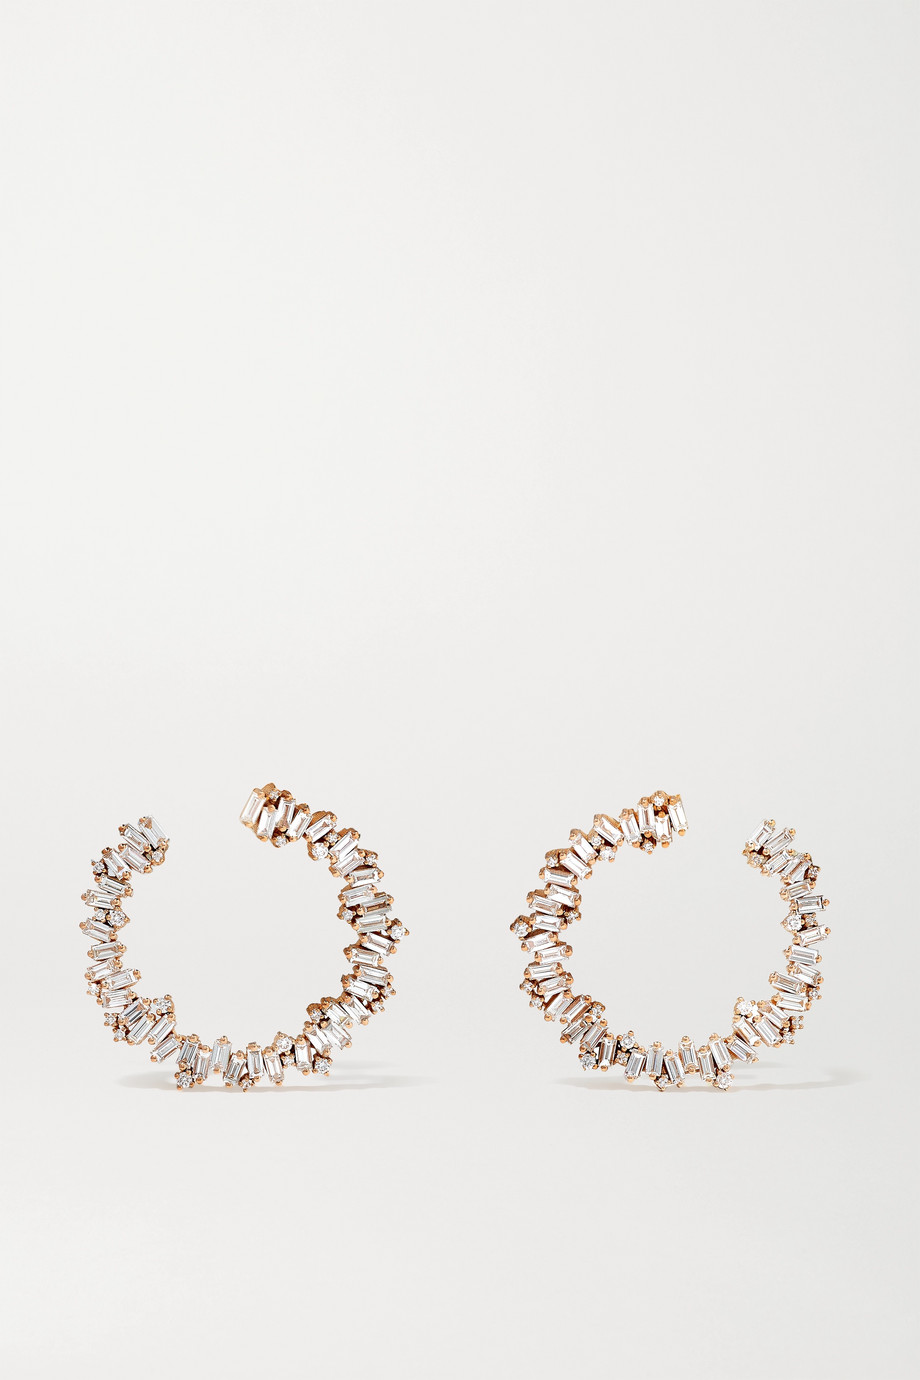 Suzanne Kalan 18-karat rose gold diamond hoop earrings